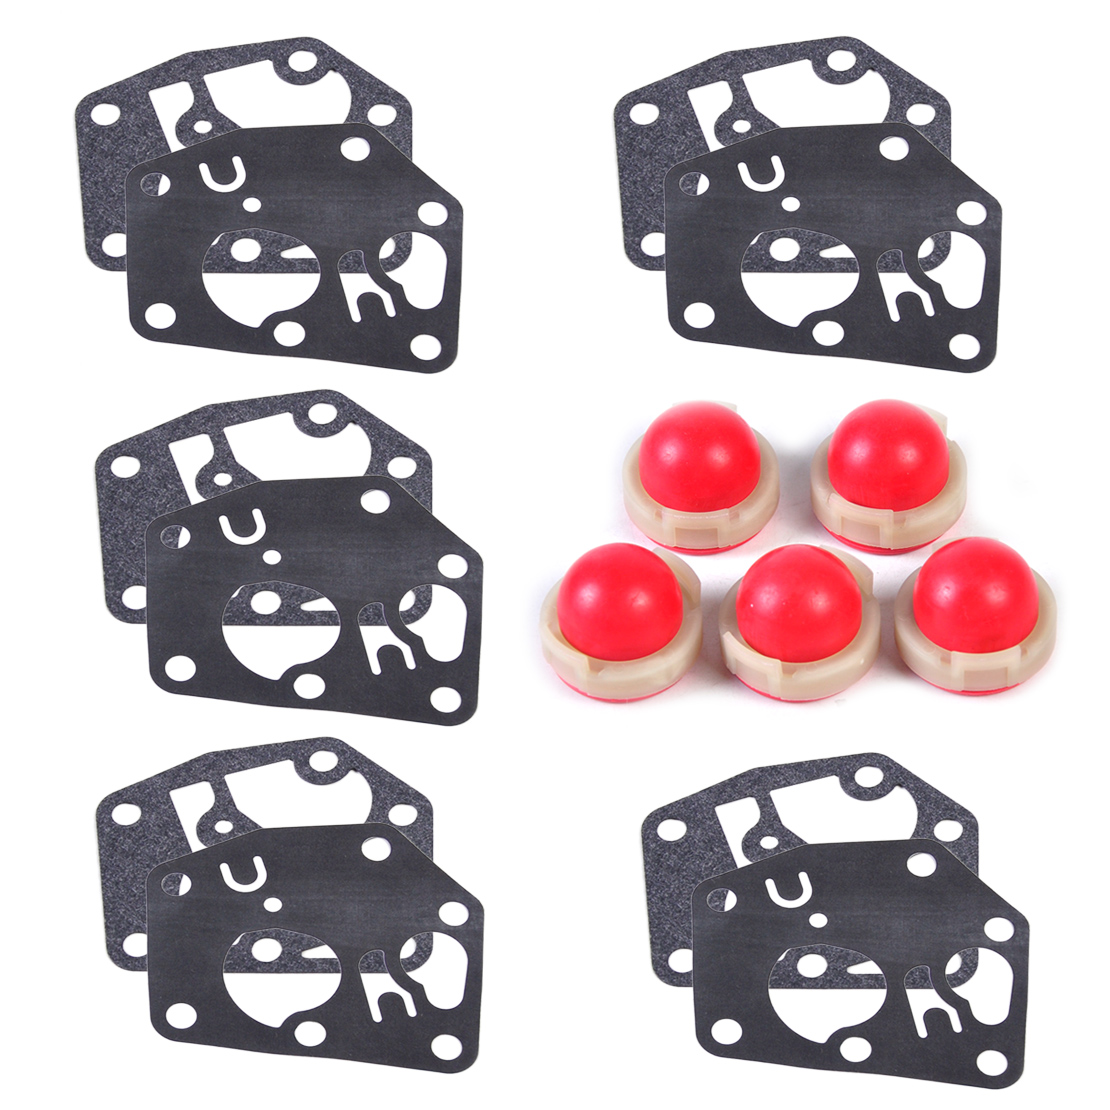 LETAOSK 5 x Primer Bulb + Diaphragm Gasket fit for <font><b>Briggs</b></font> & Stratton 694394 494408 <font><b>795083</b></font> 495770Accessories image